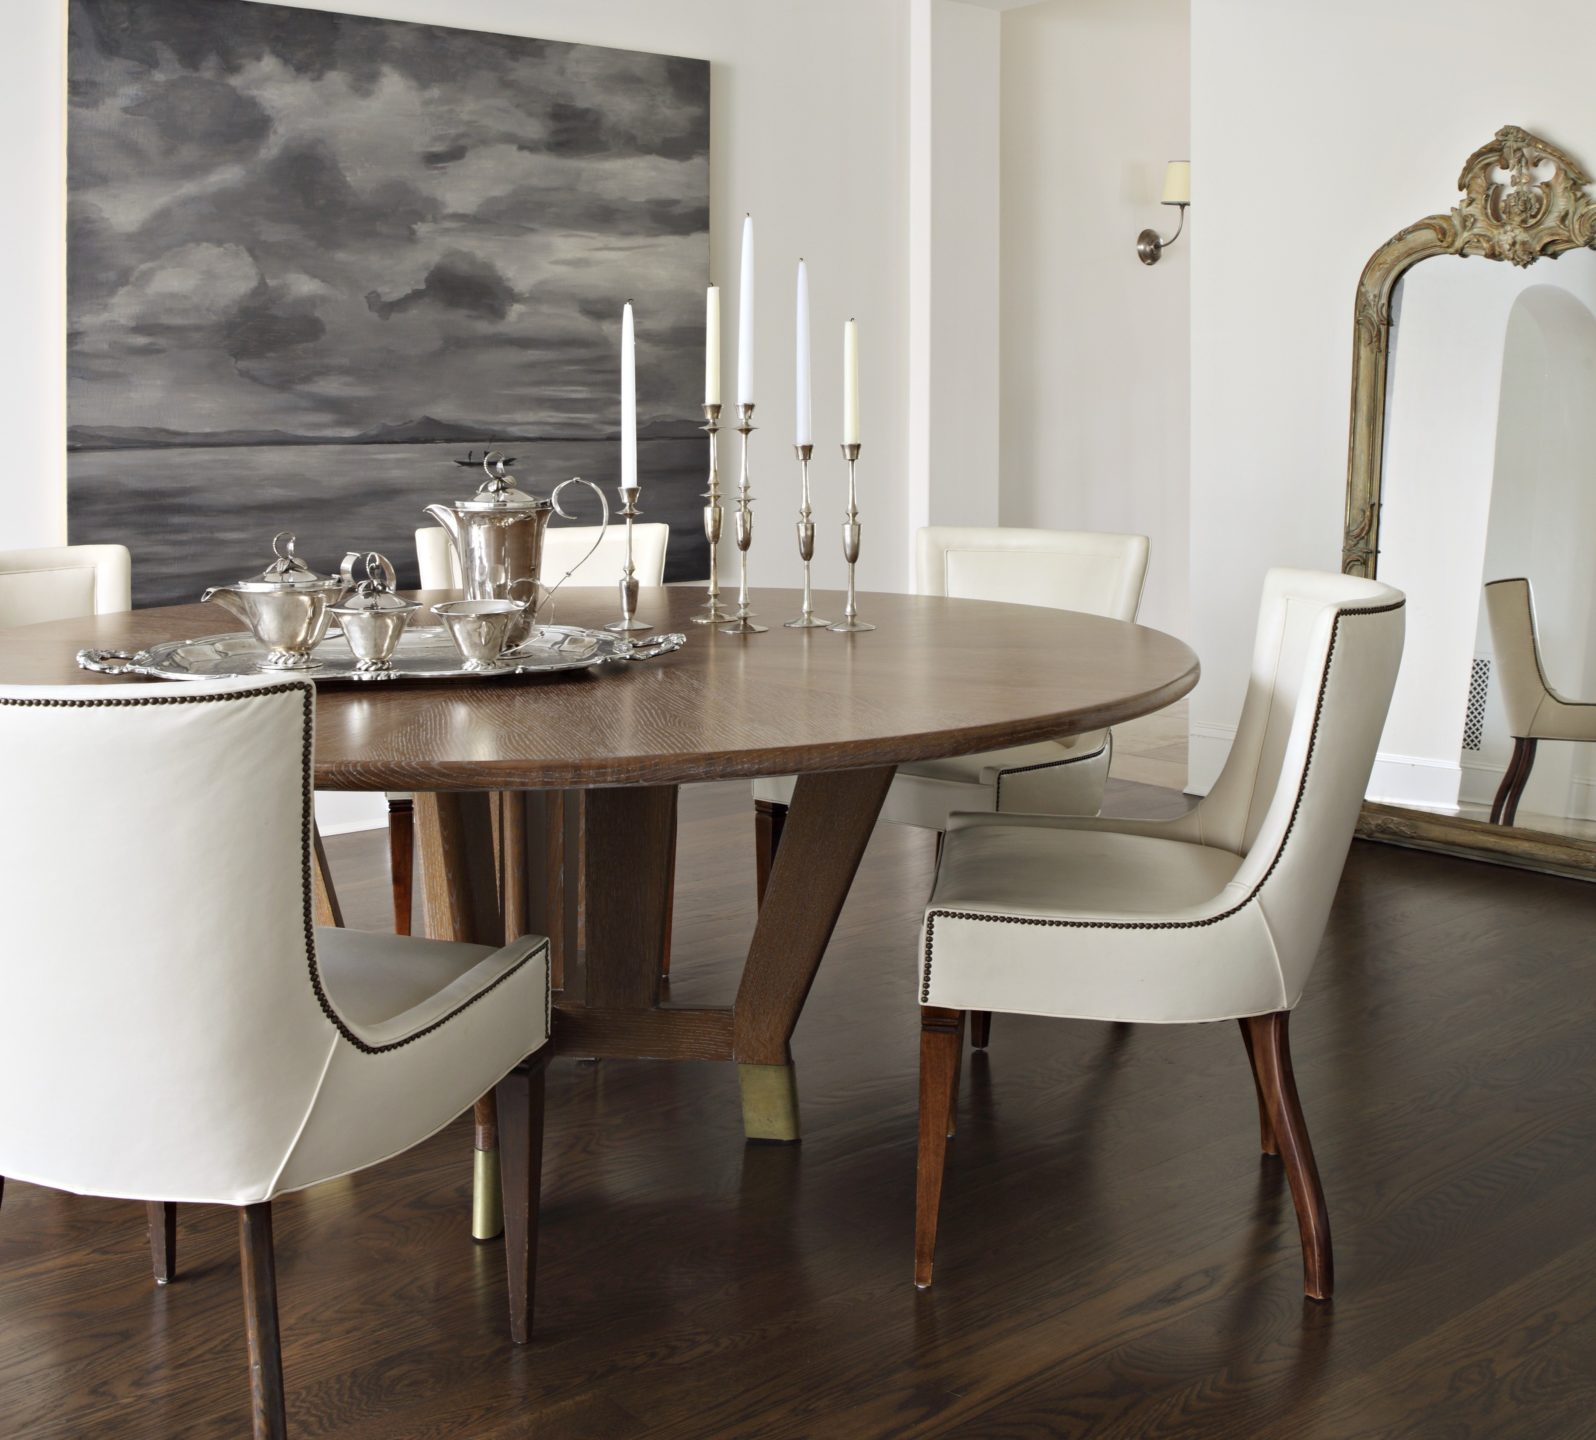 Studio_William_Hefner_products_verona_chair_DR_dining_room cropped